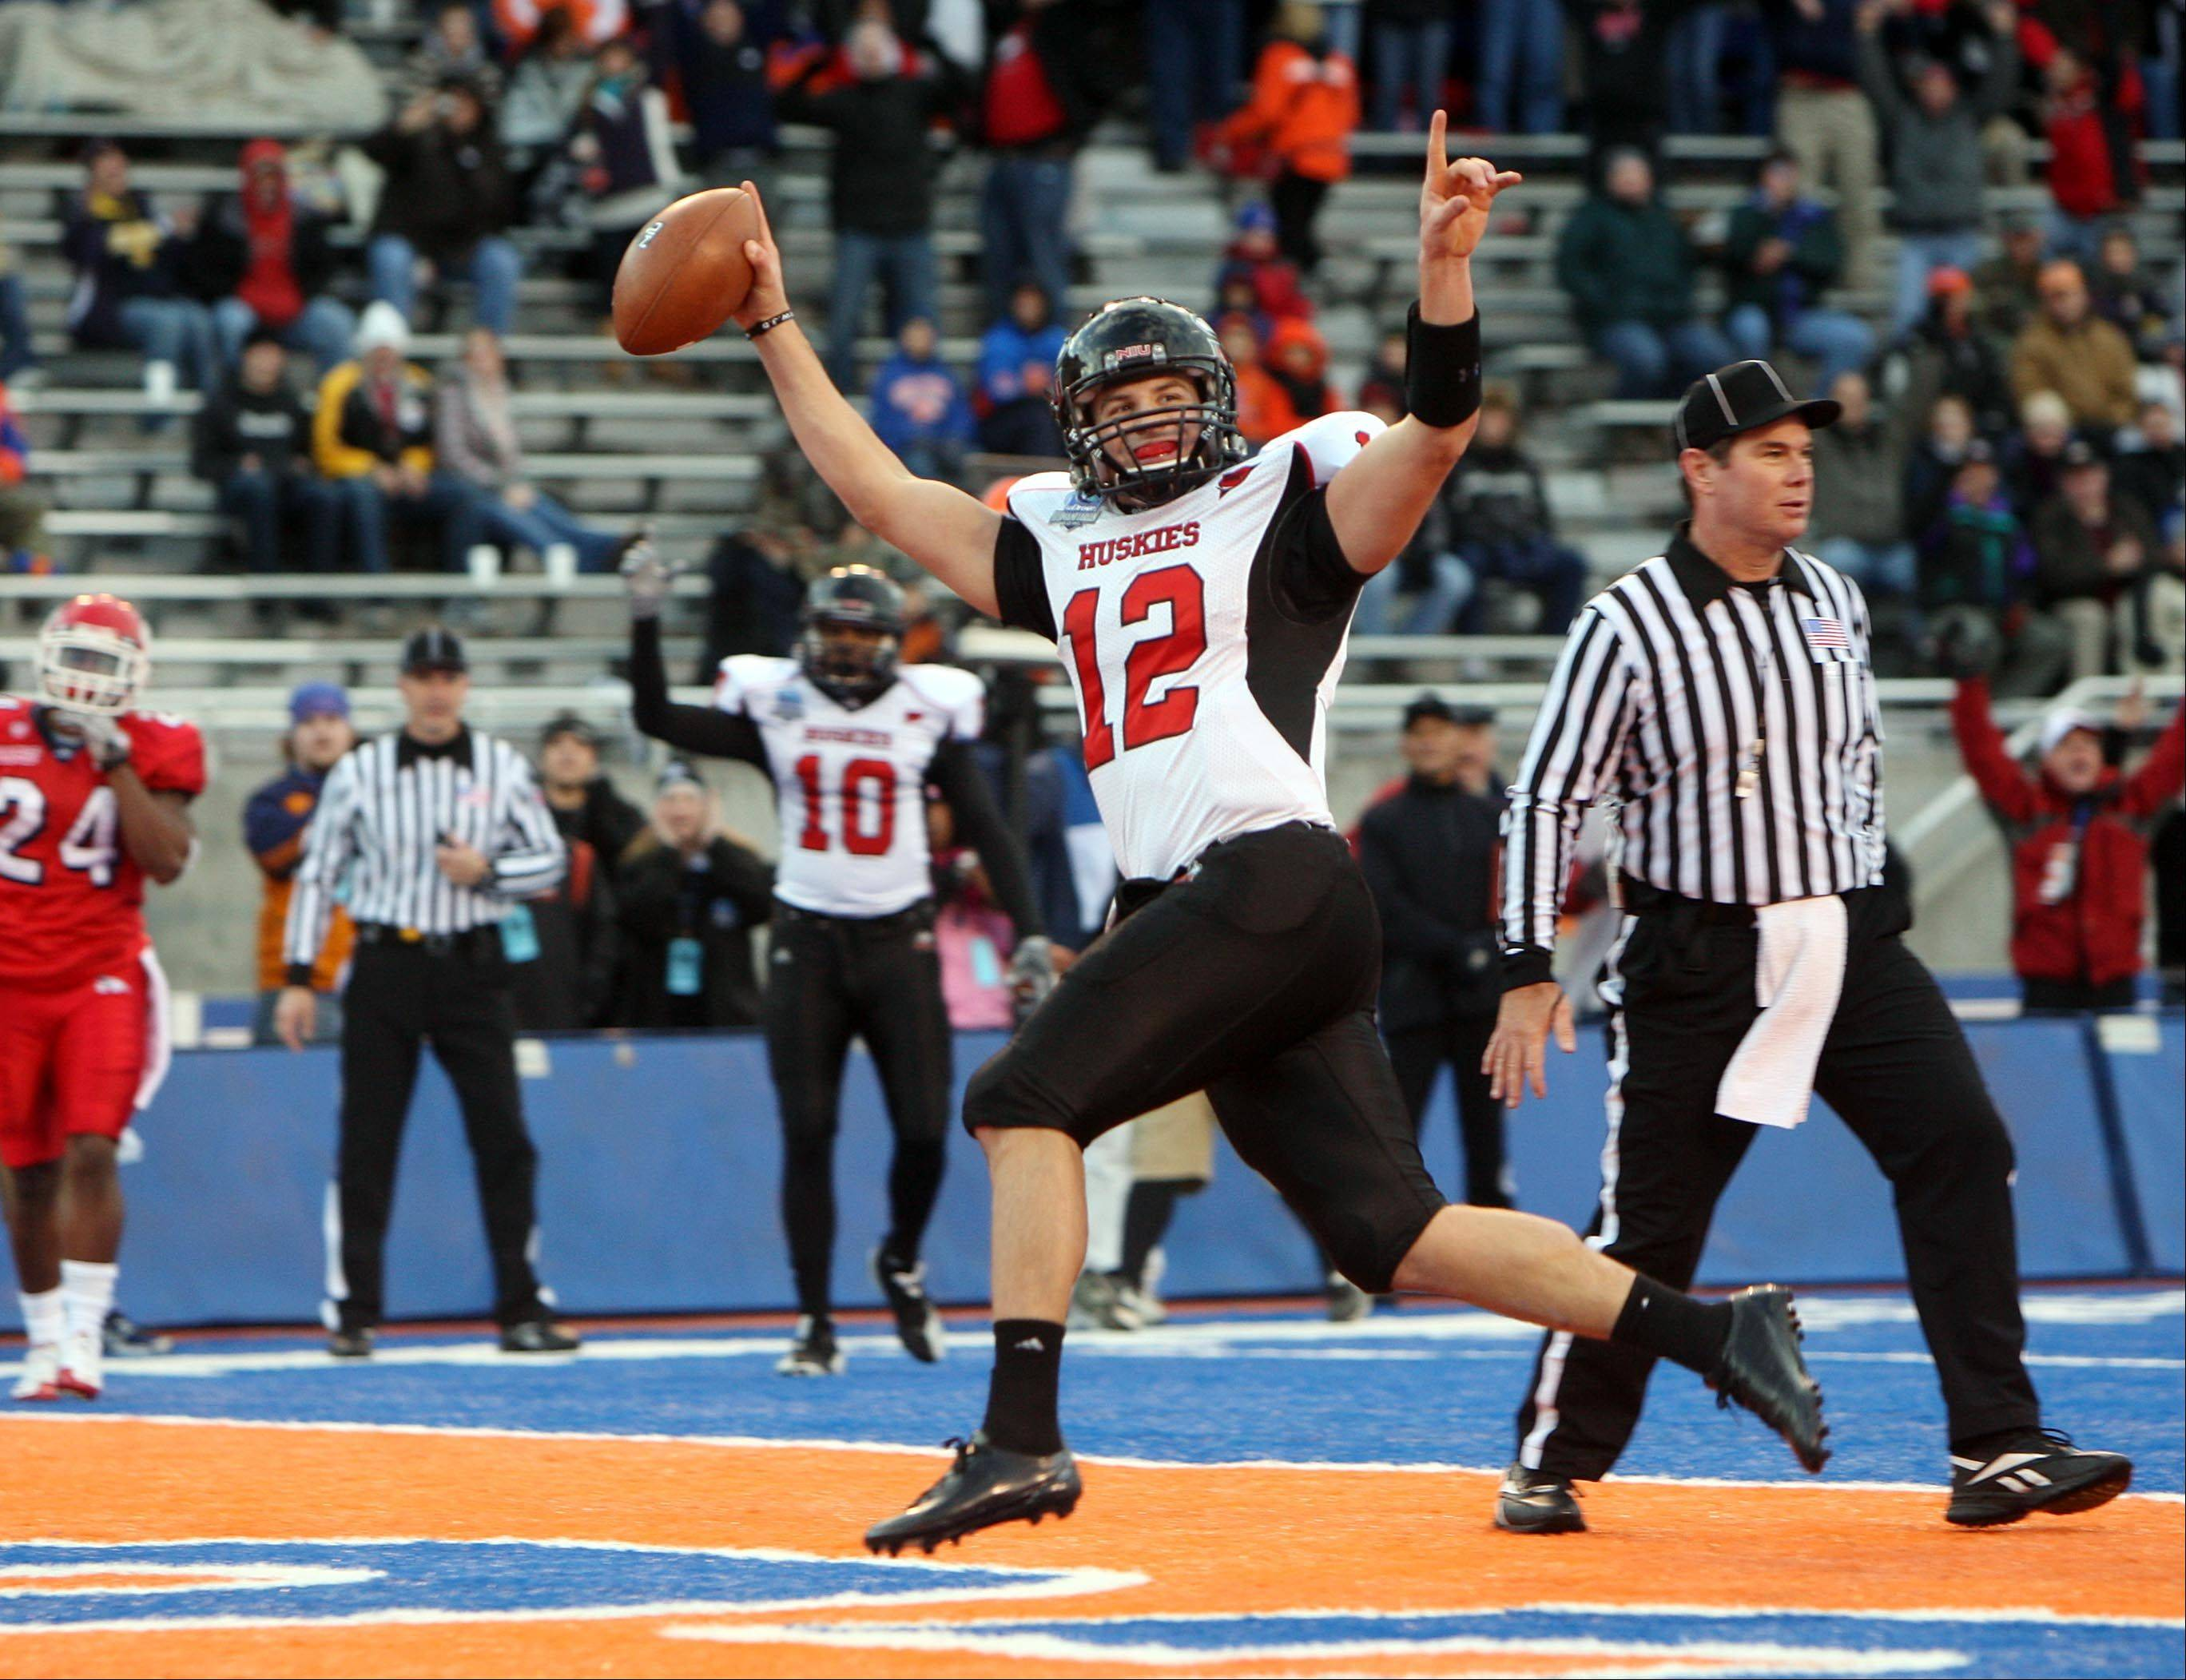 Northern Illinois quarterback Chandler Harnish (12) celebrates a first-half touchdown against Fresno State in the uDrove Humanitarian Bowl at Bronco Stadium, Saturday, Dec. 18, 2010, in Boise, Idaho.